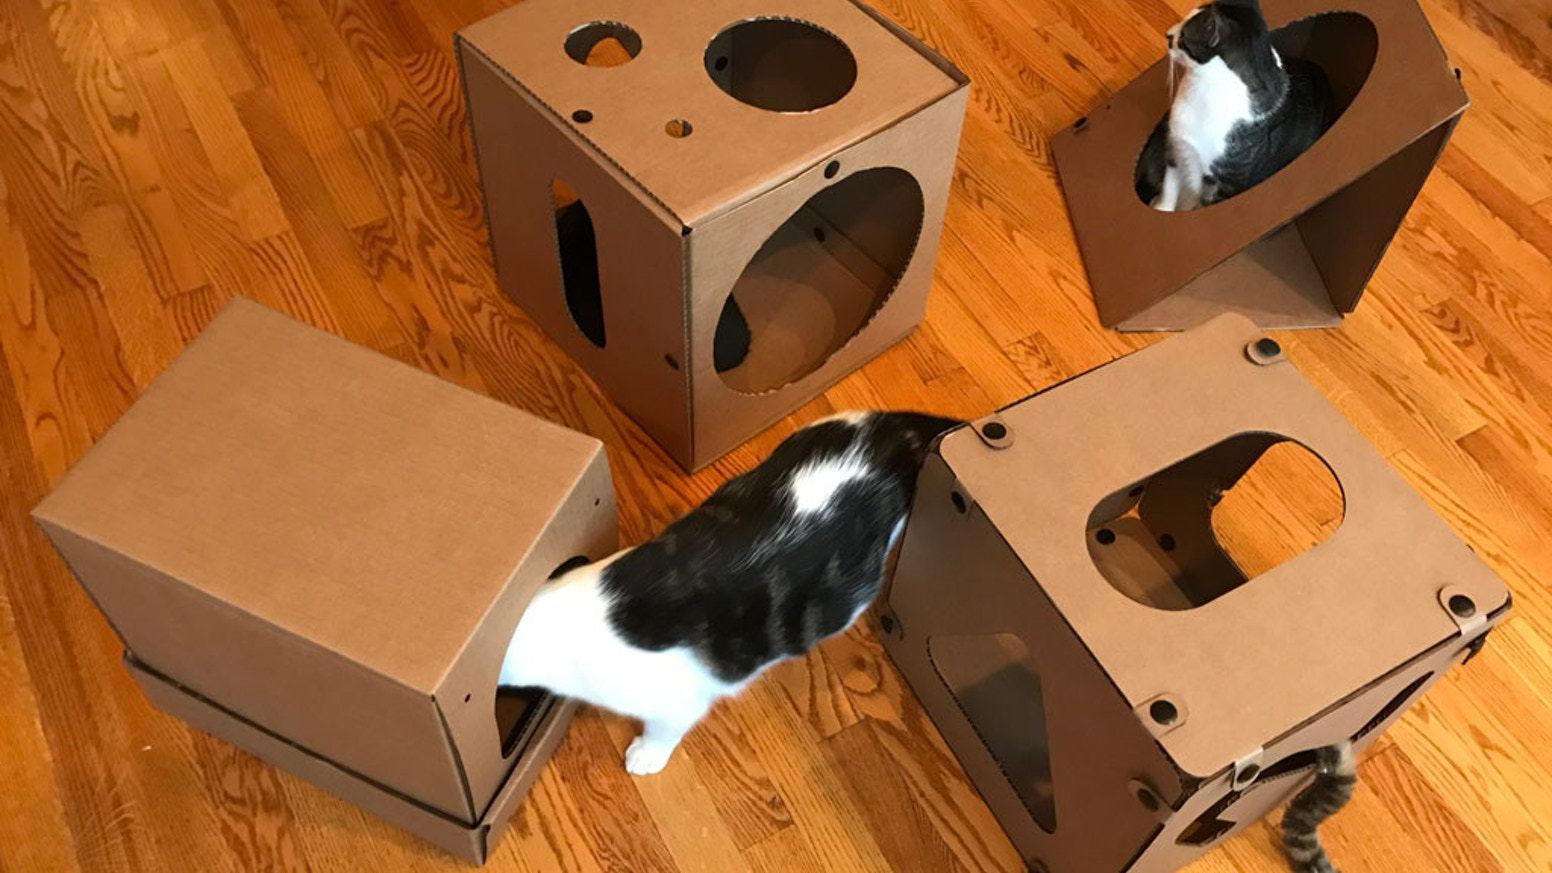 Become part of the community, helping test and design boxes with your cats, with the goal of helping animal shelters in Chicago.